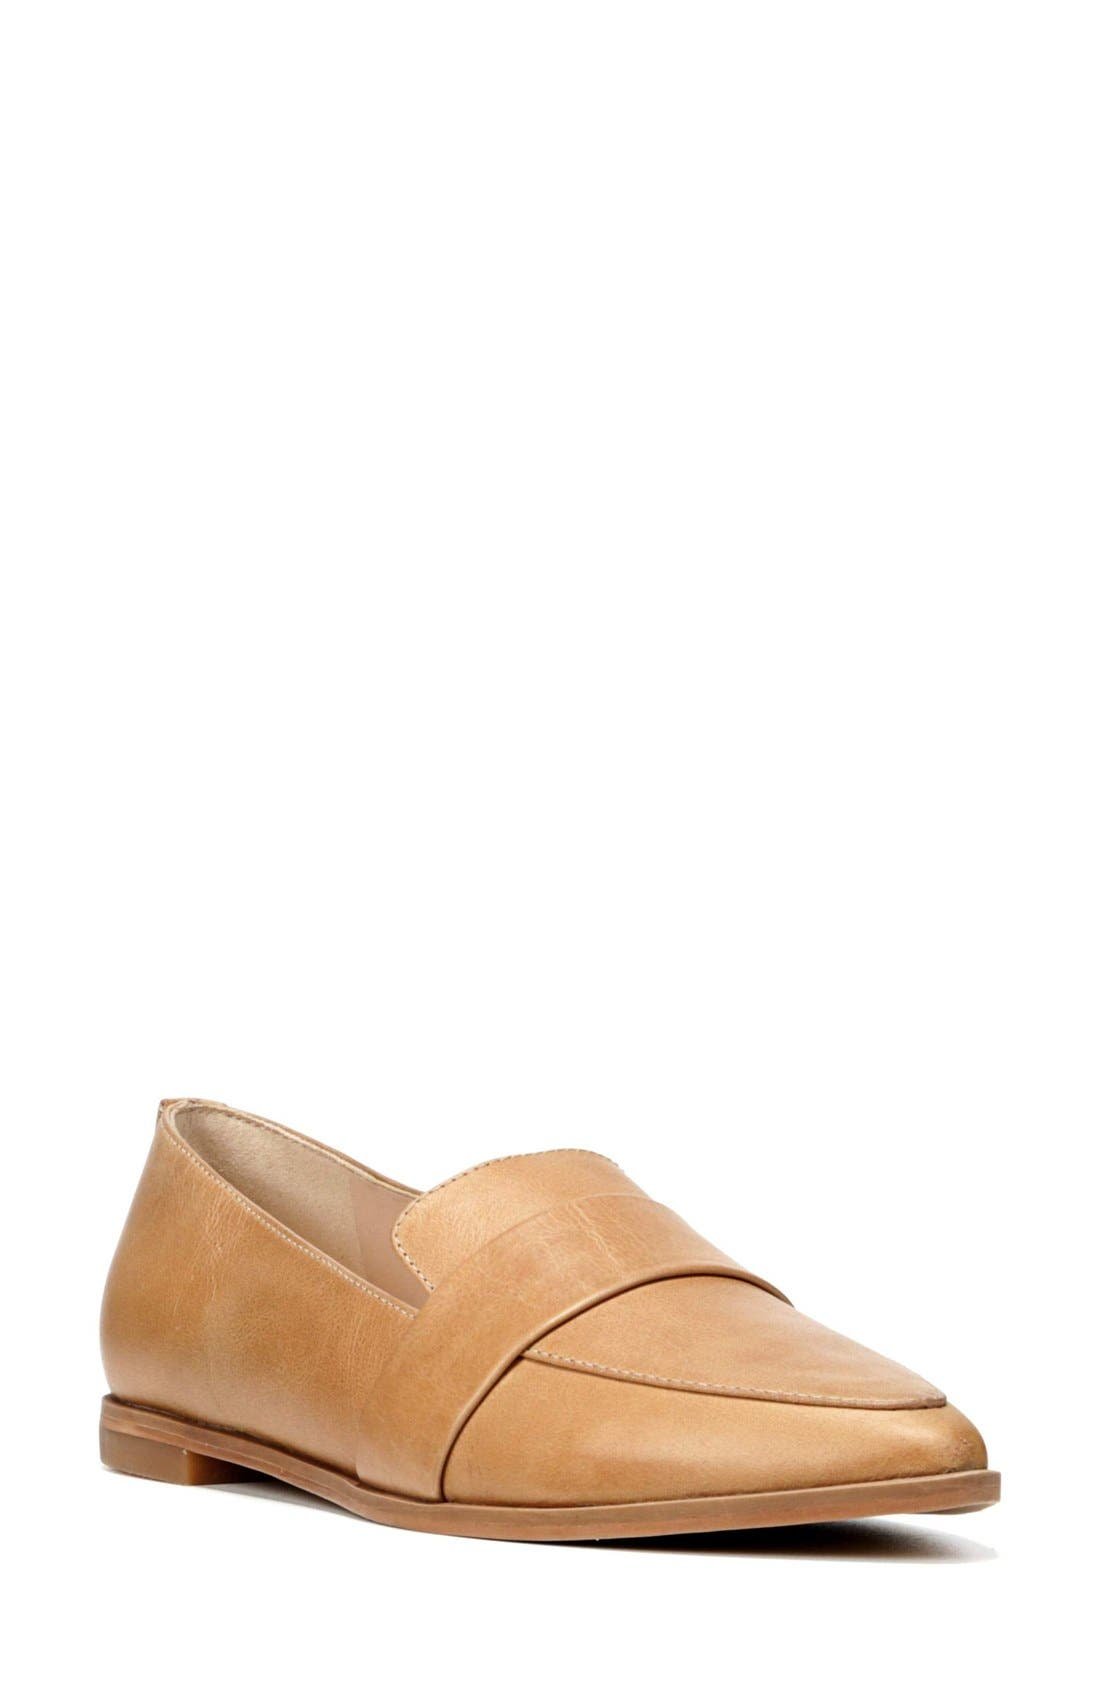 Alternate Image 1 Selected - Dr. Scholl's 'Ashah' Pointed Toe Flat (Women)